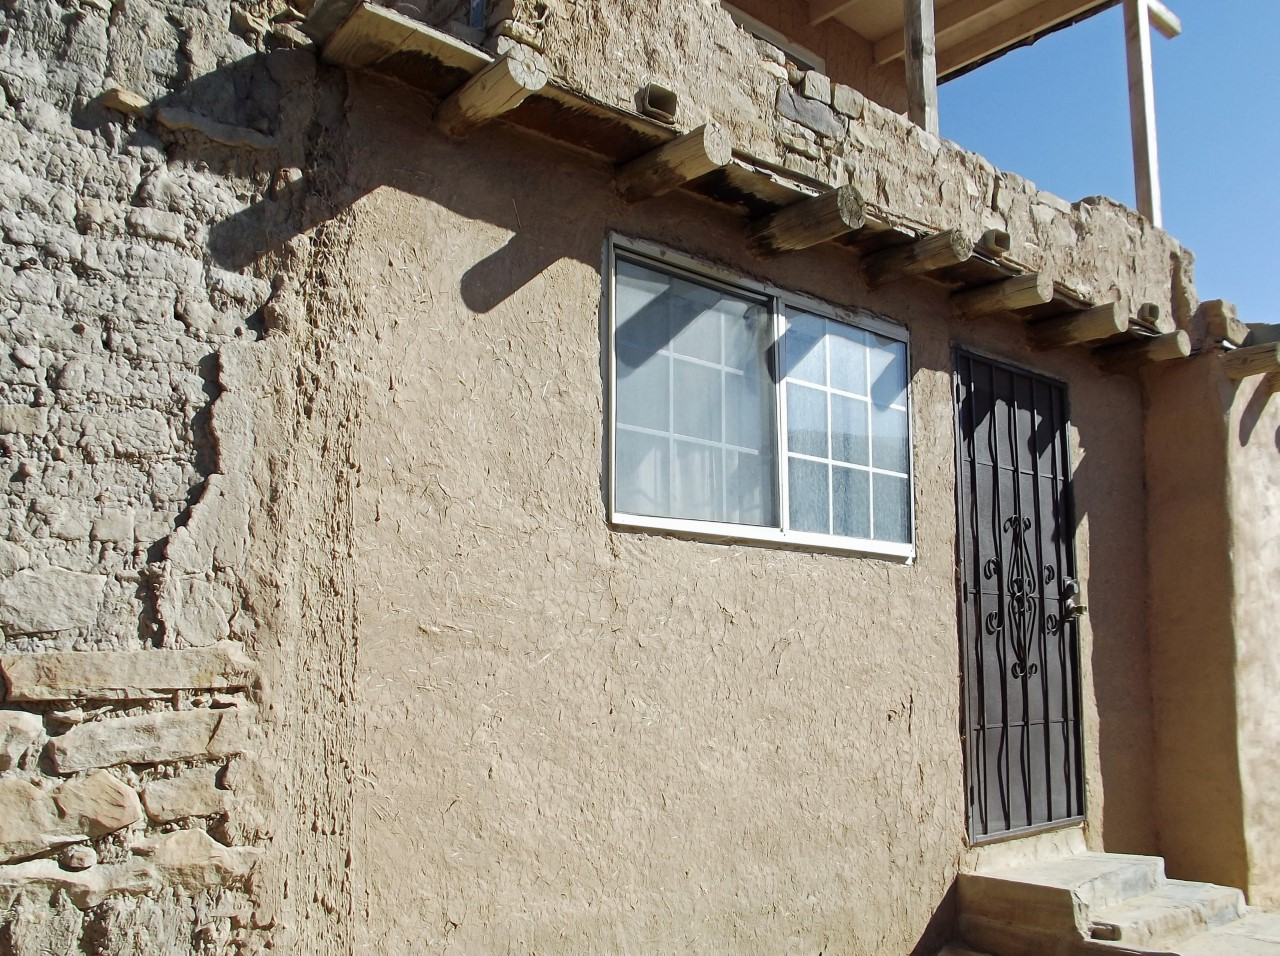 Adobe house with window and door